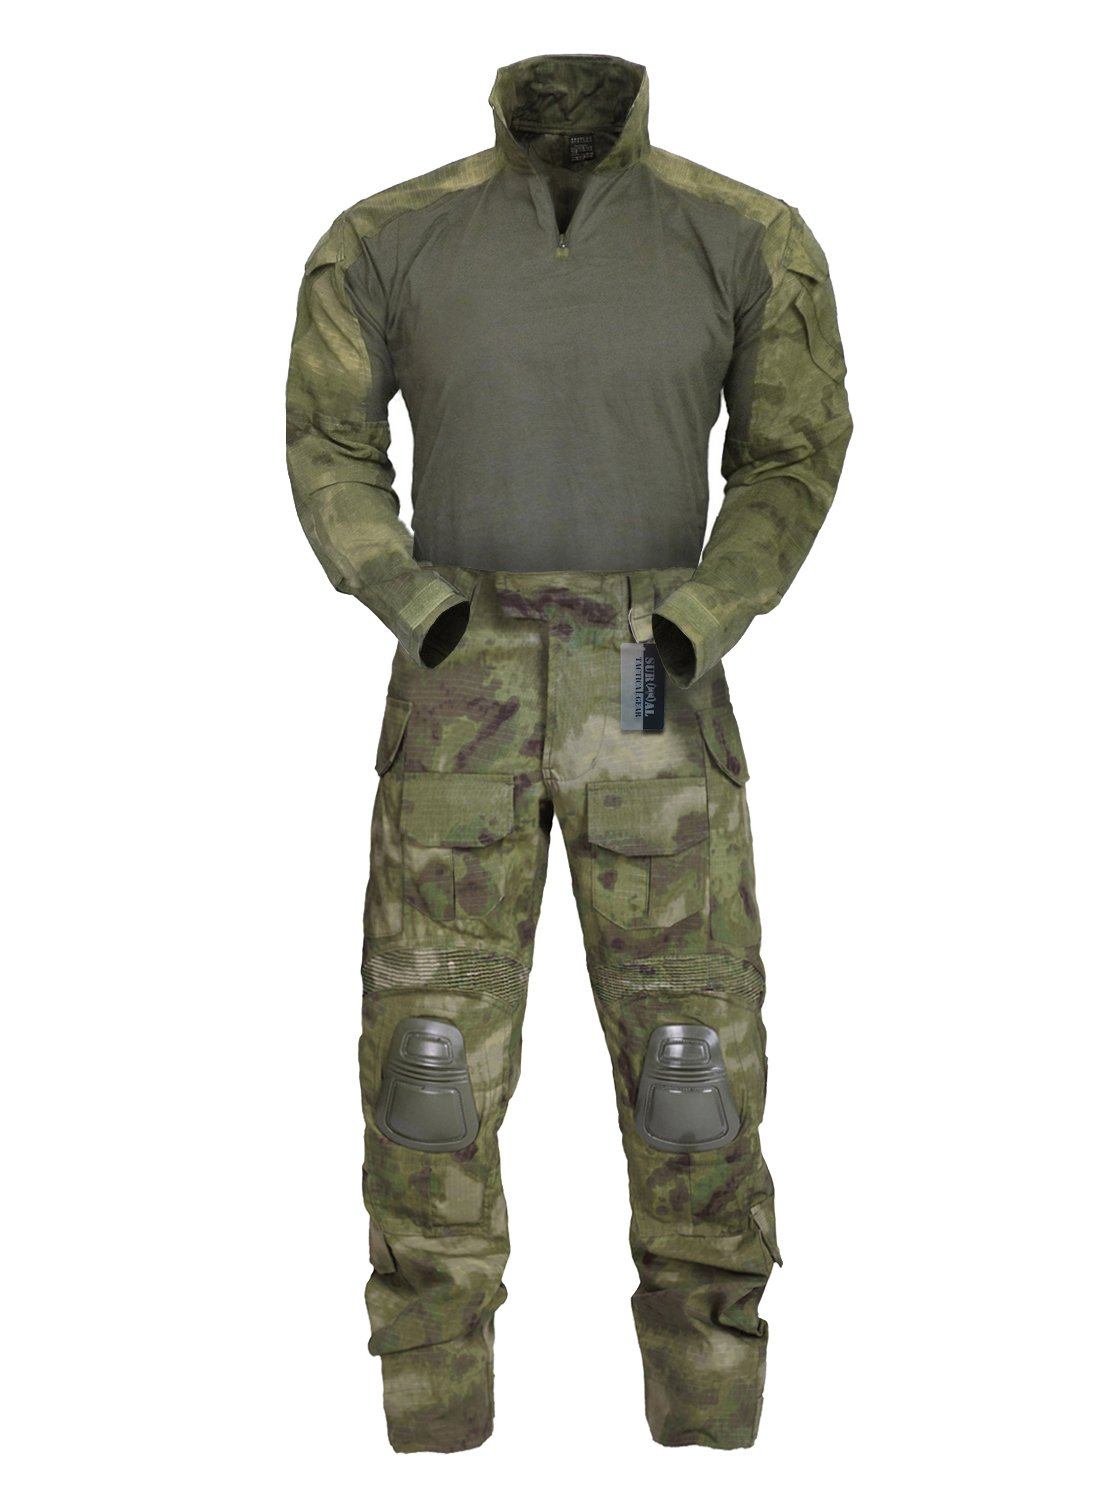 ZAPT Military Tactical Clothing Army Combat Apparel Camouflage Uniform With Knee Elbow Pad (40,A-TACS FG)